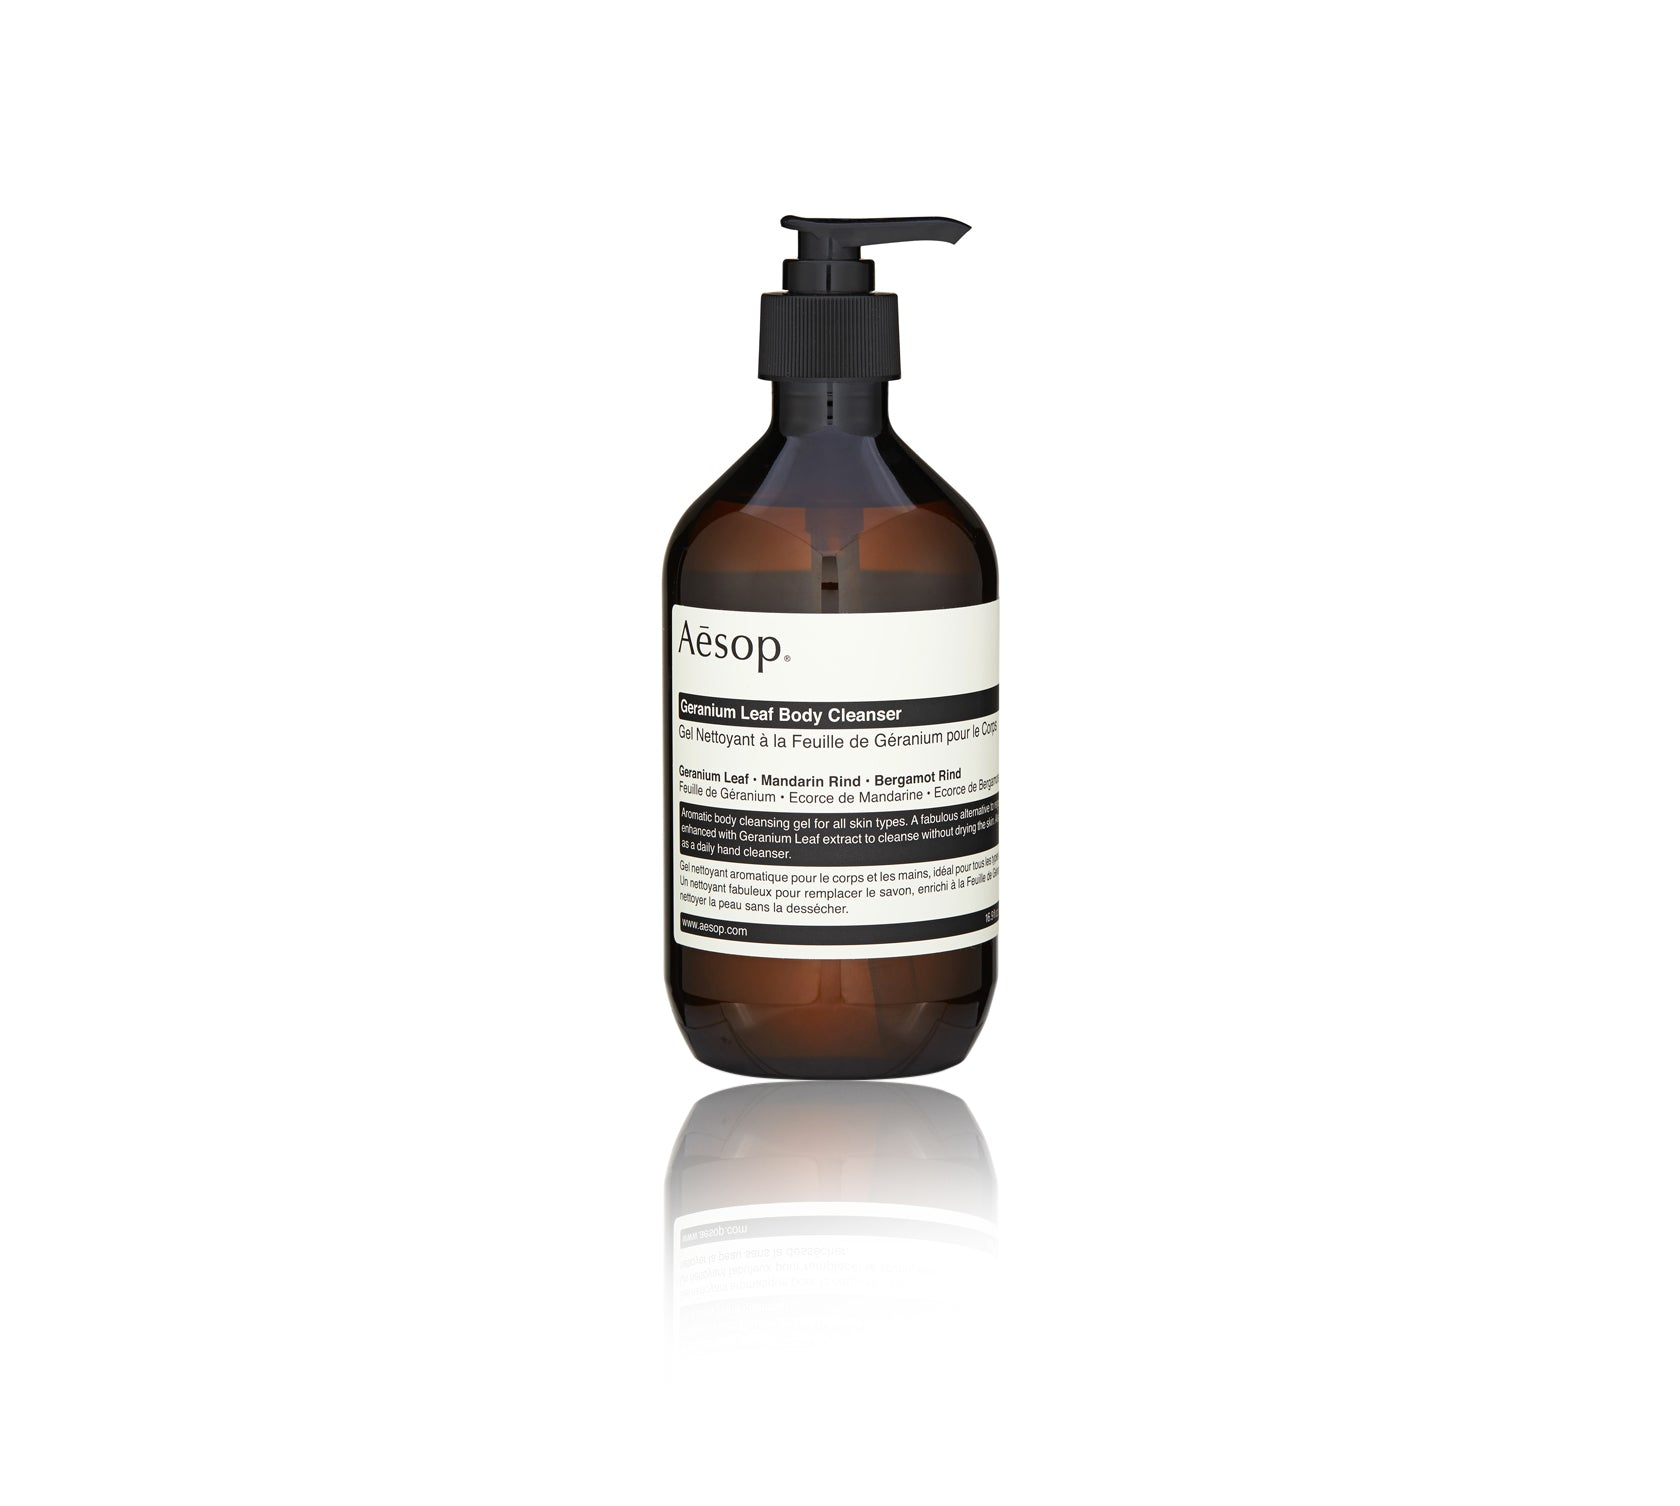 geranium-leaf-body-cleanser